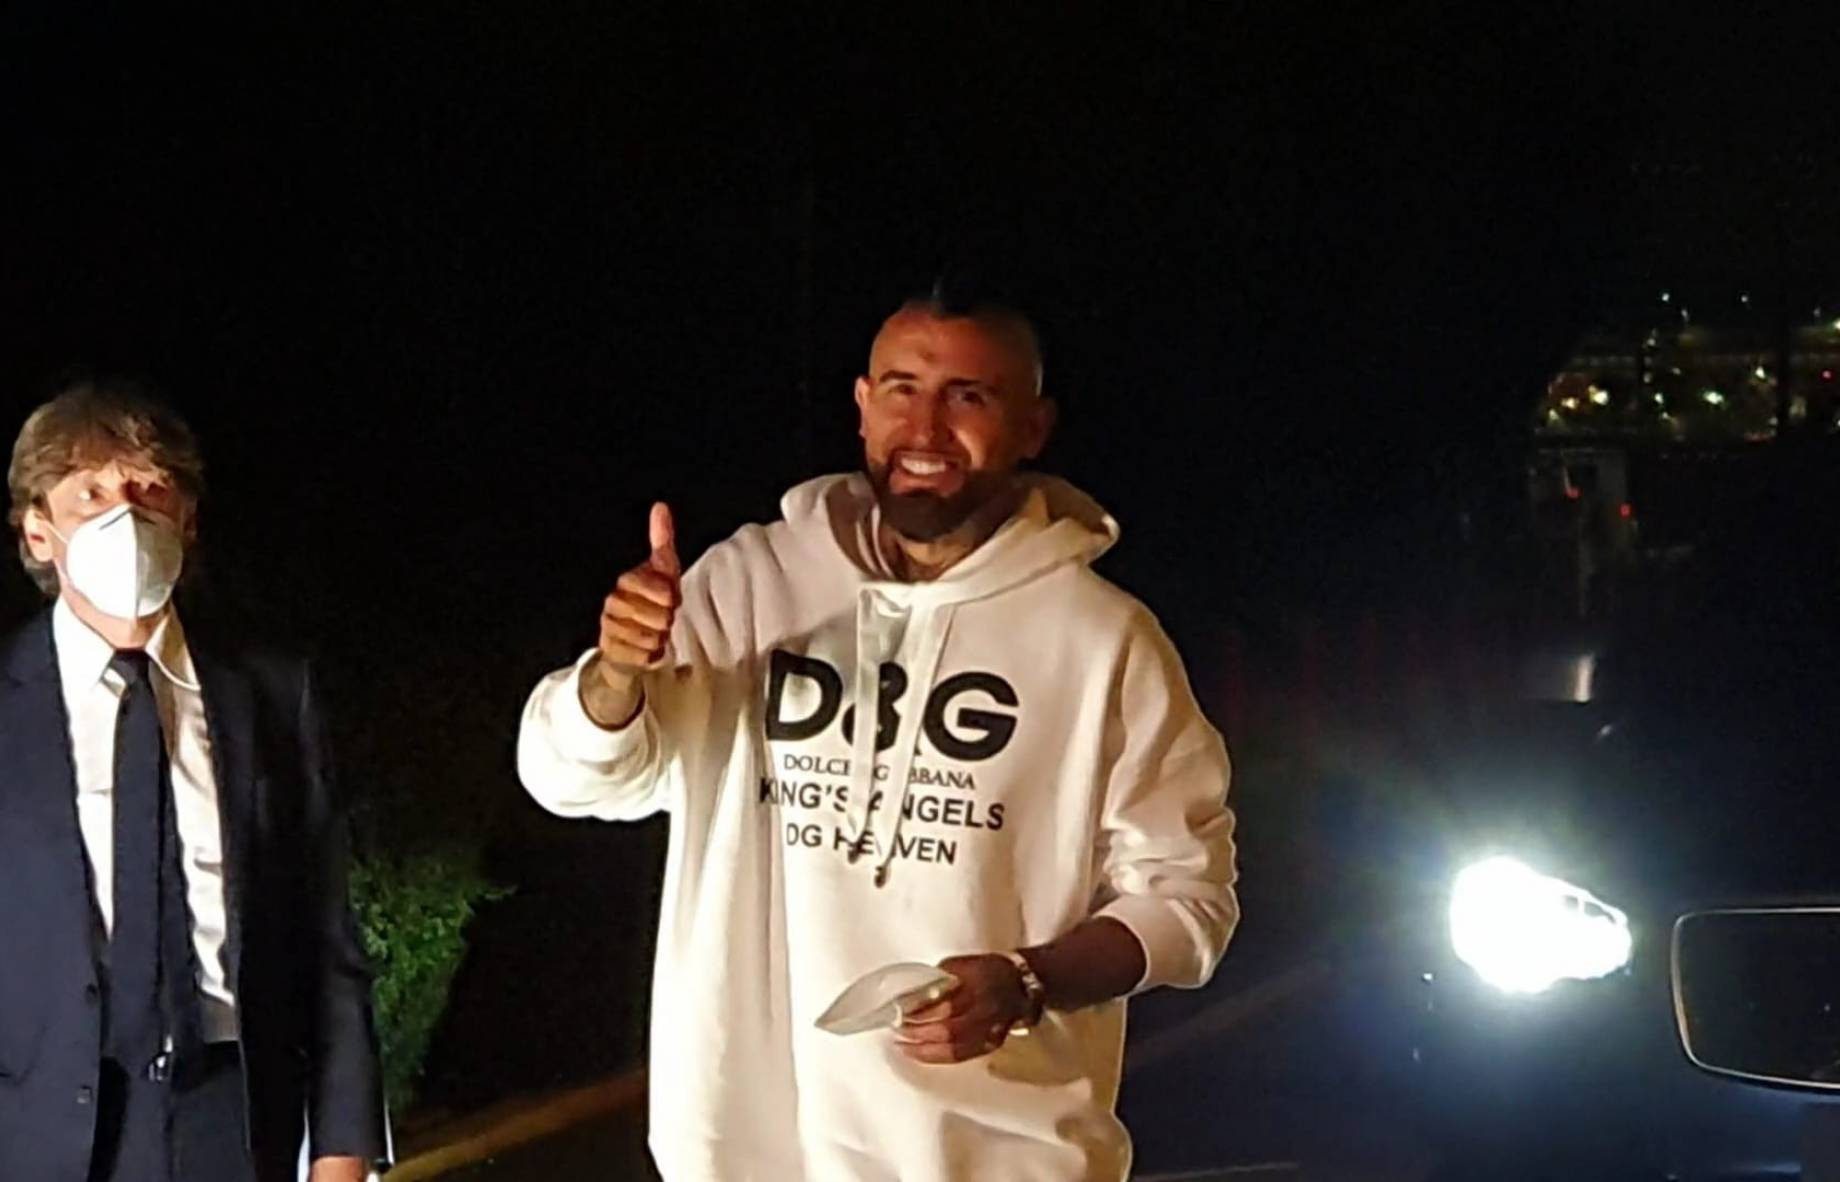 Inter, first images of Vidal after his arrival in the city